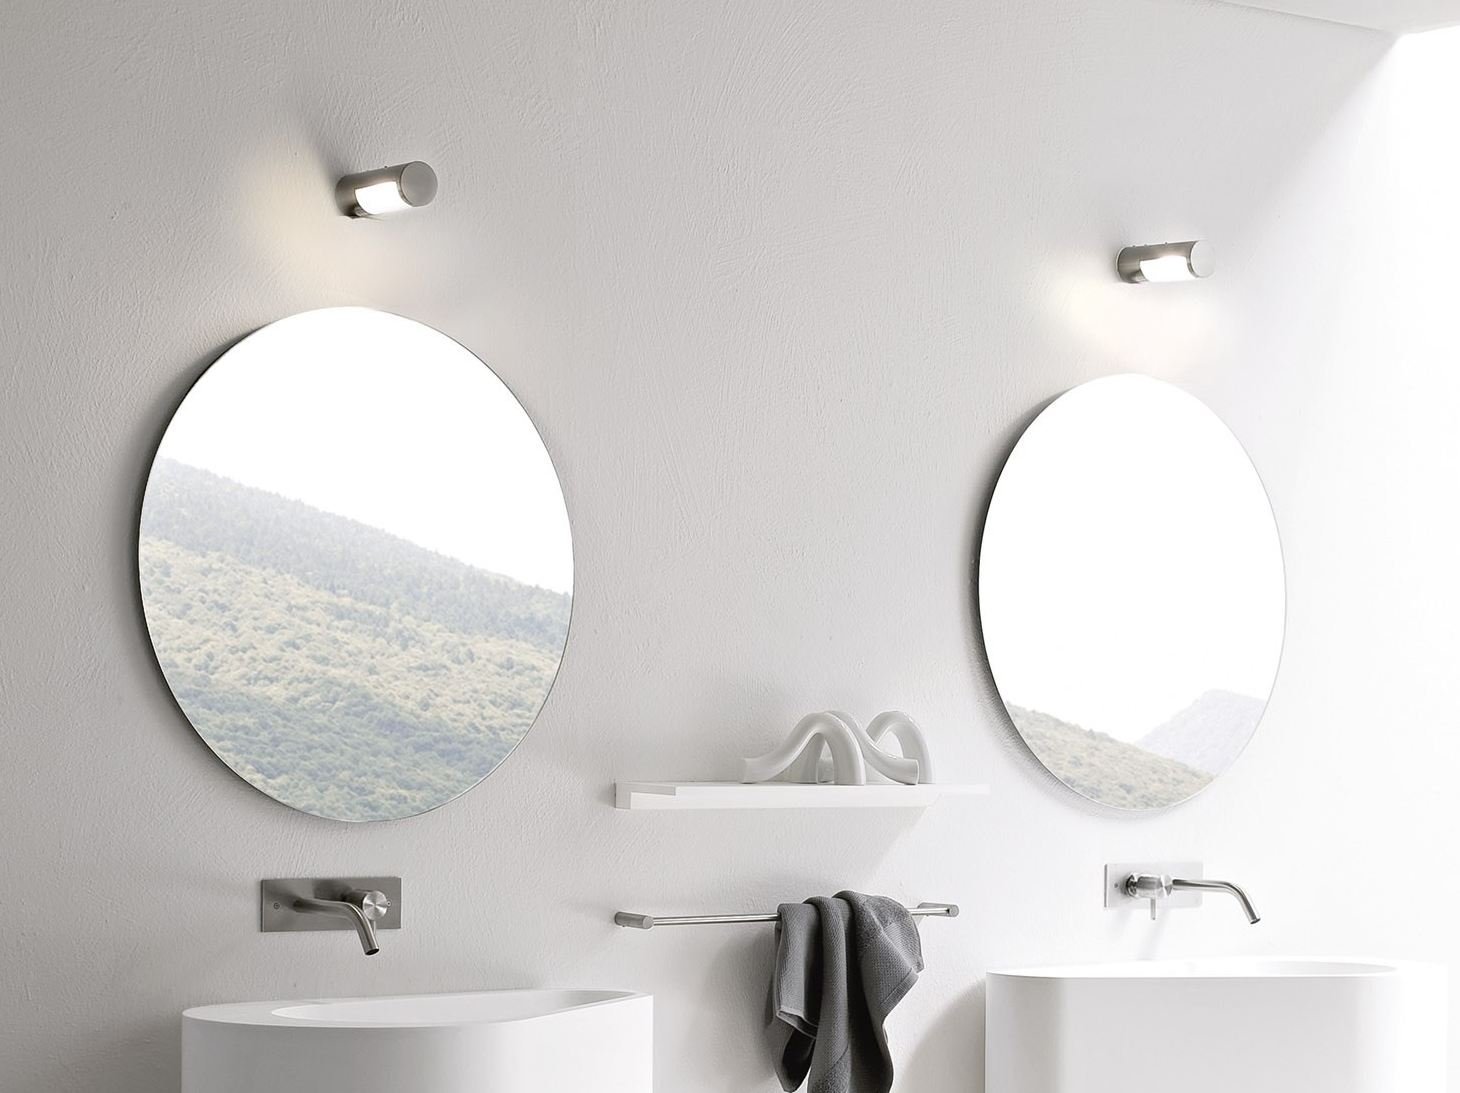 hole miroir pour salle de bain by rexa design design susanna mandelli. Black Bedroom Furniture Sets. Home Design Ideas